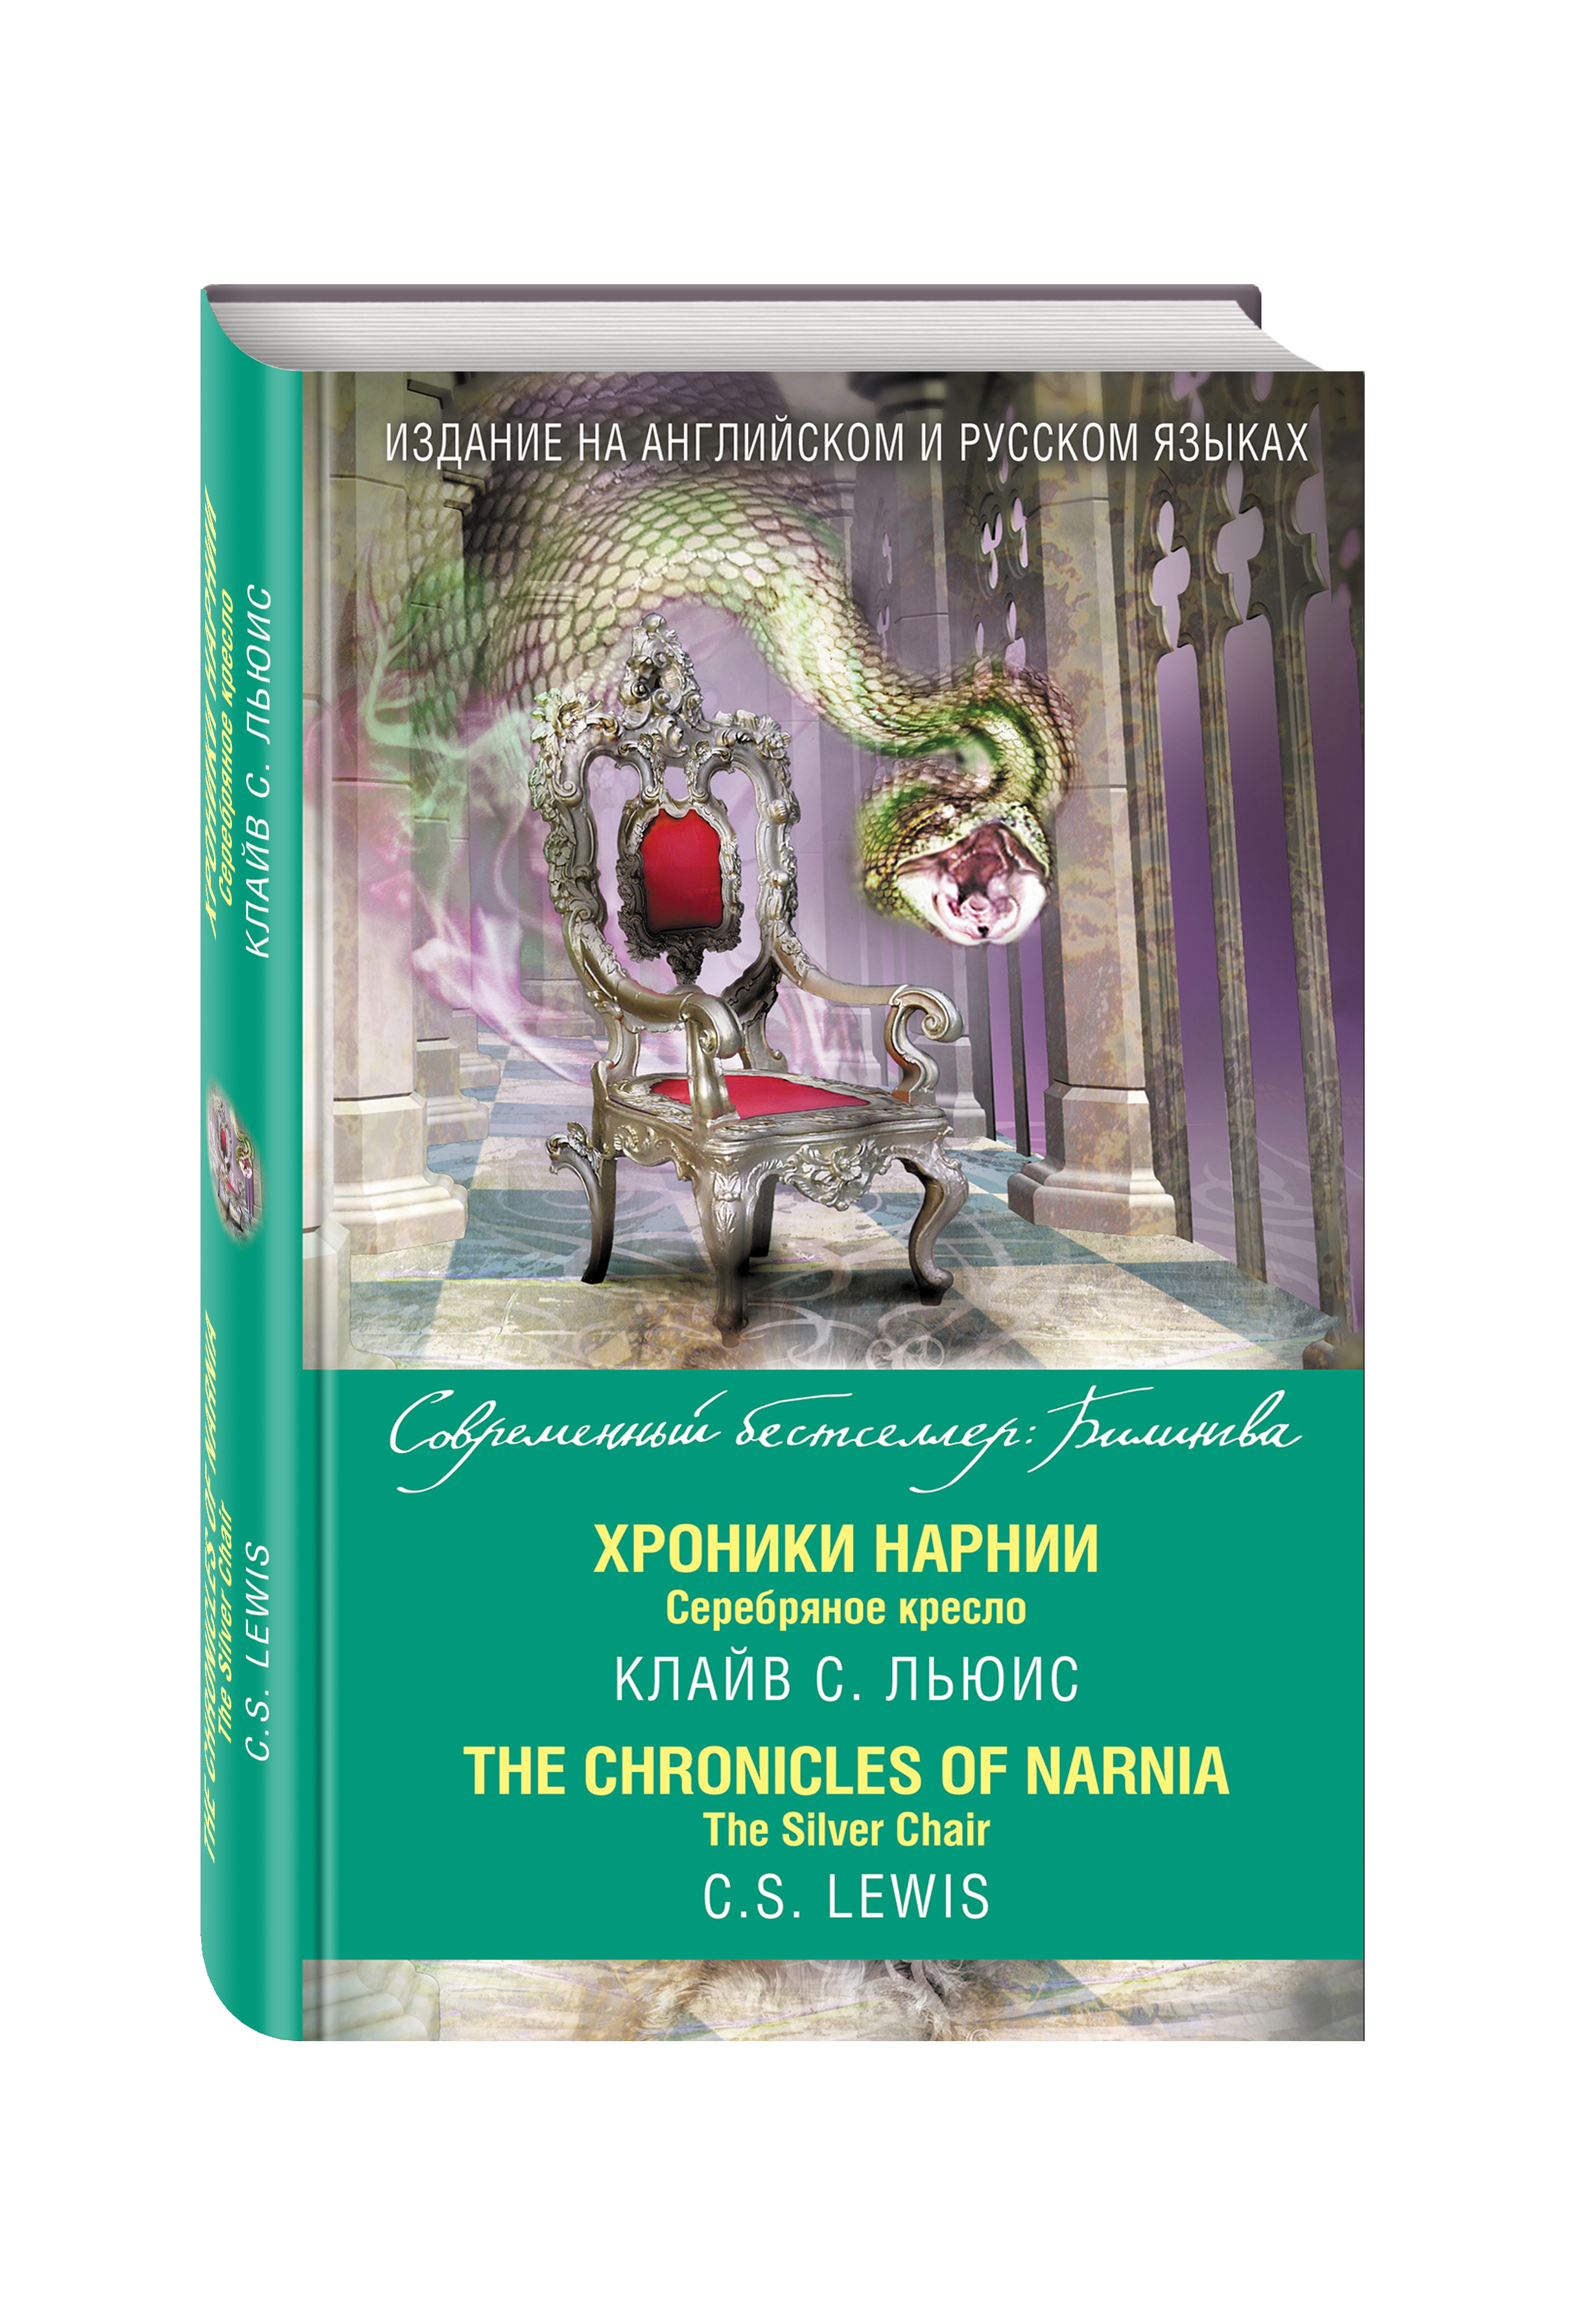 chronicles of narnia the the voyage of the dawn treader Льюис К. Хроники Нарнии. Серебряное кресло = The Chronicles of Narnia. The Silver Chair